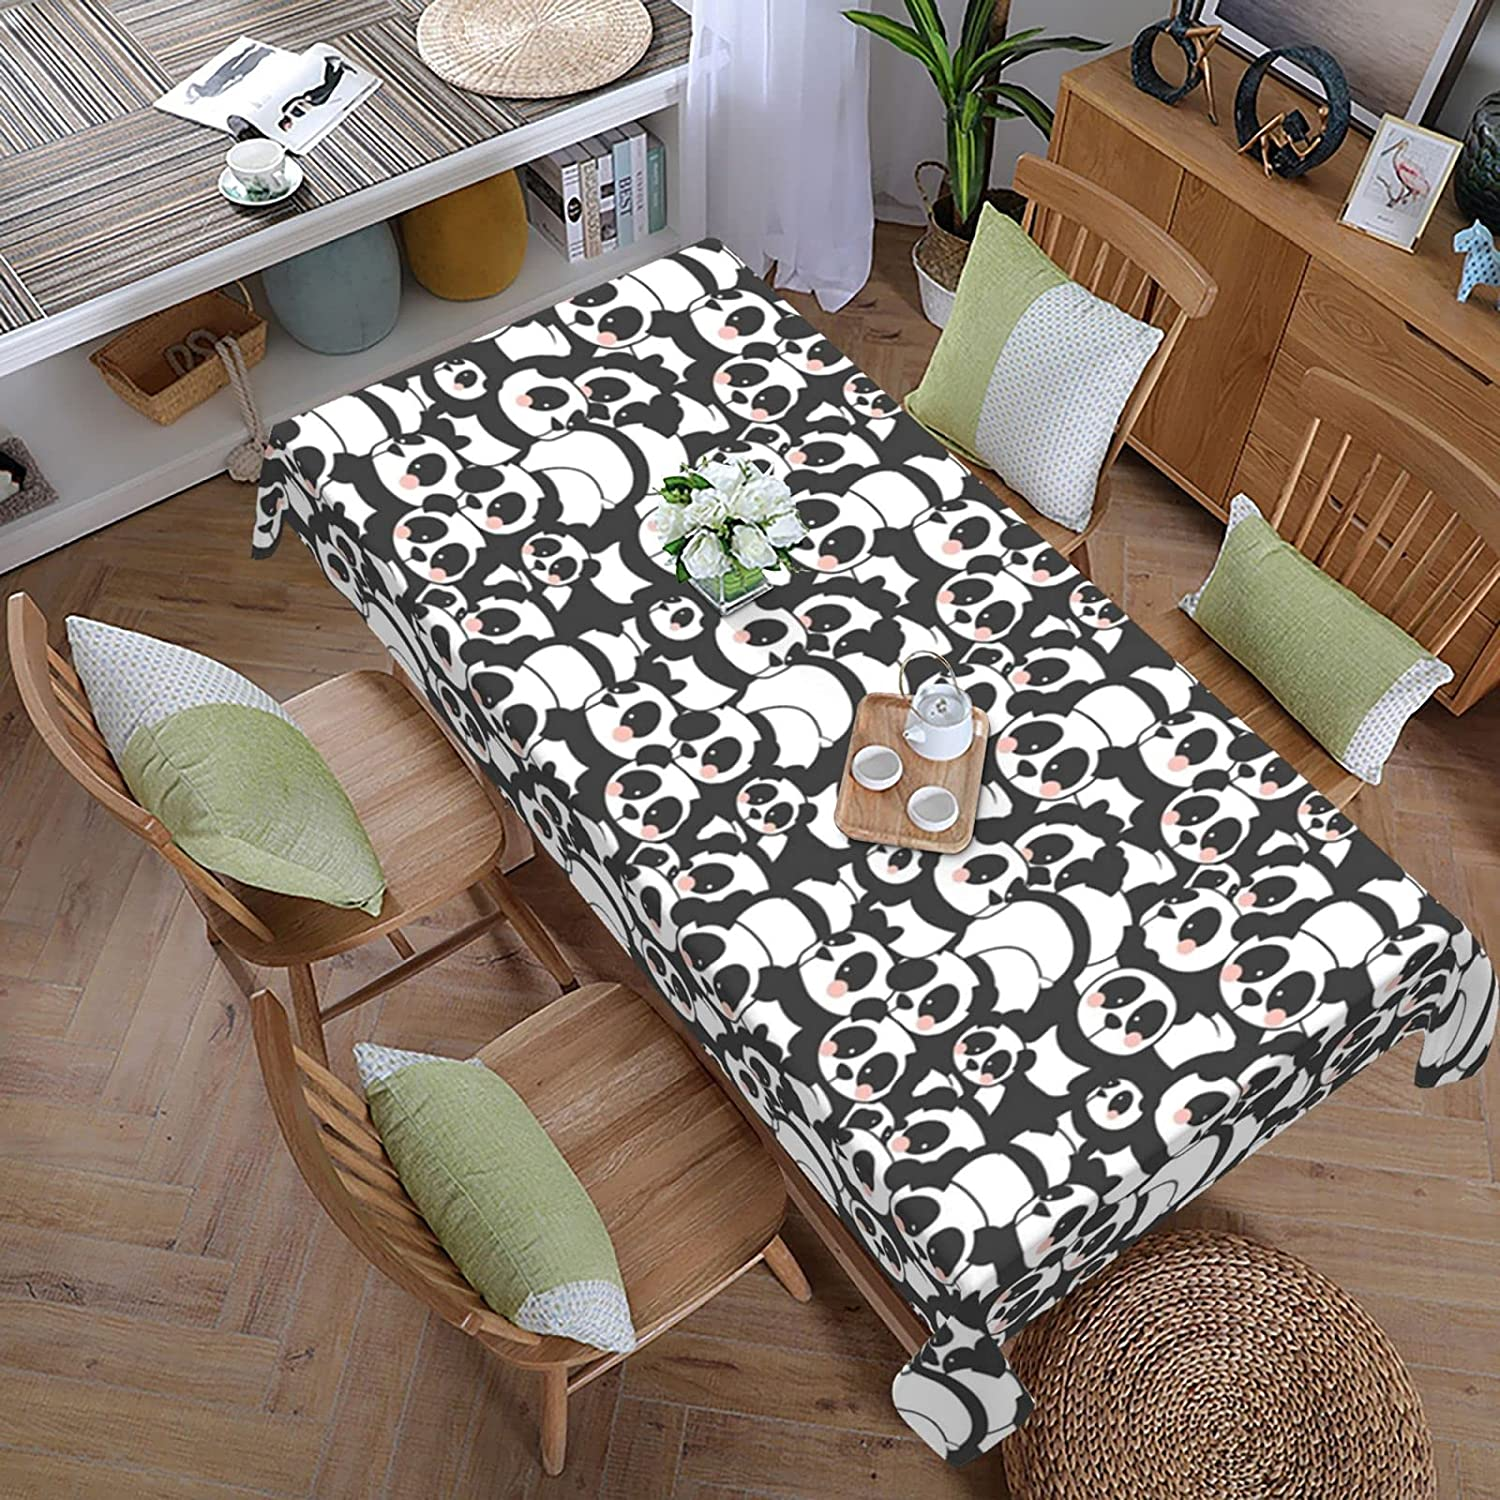 Panda Tablecloth-108x60 in Polyester Cloth Ranking TOP10 Table Washable El Paso Mall